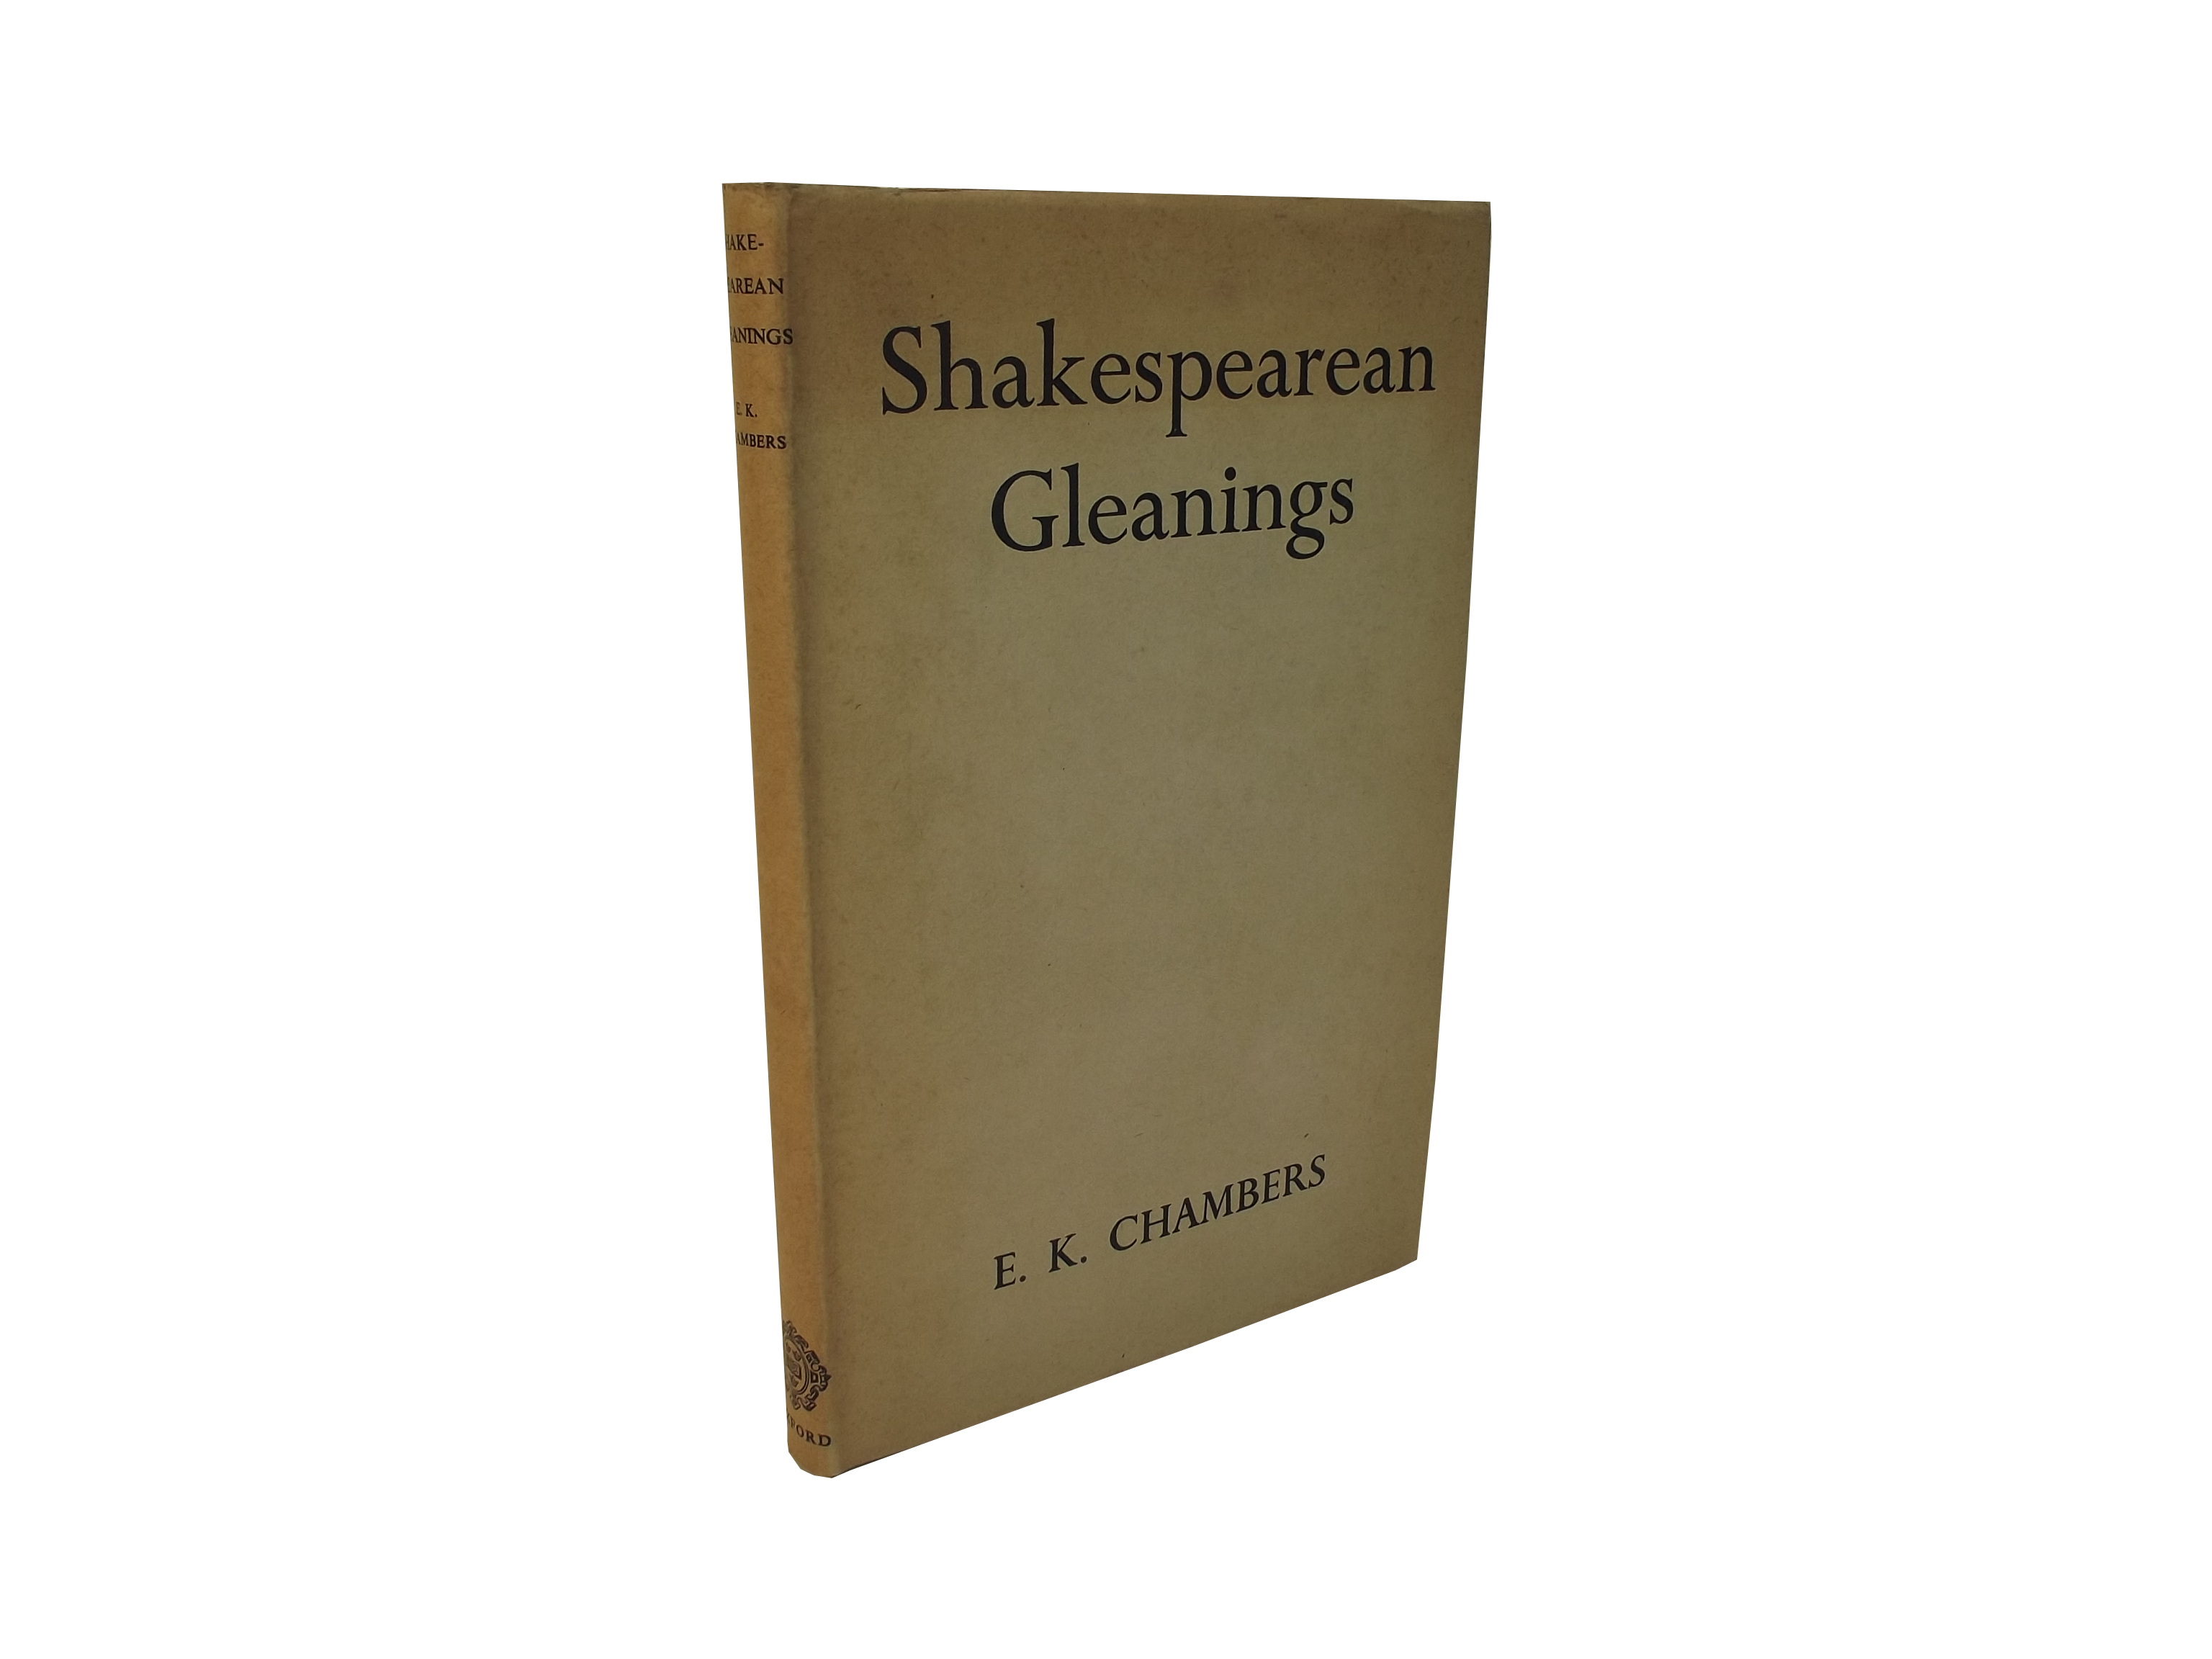 Shakespearean Gleanings